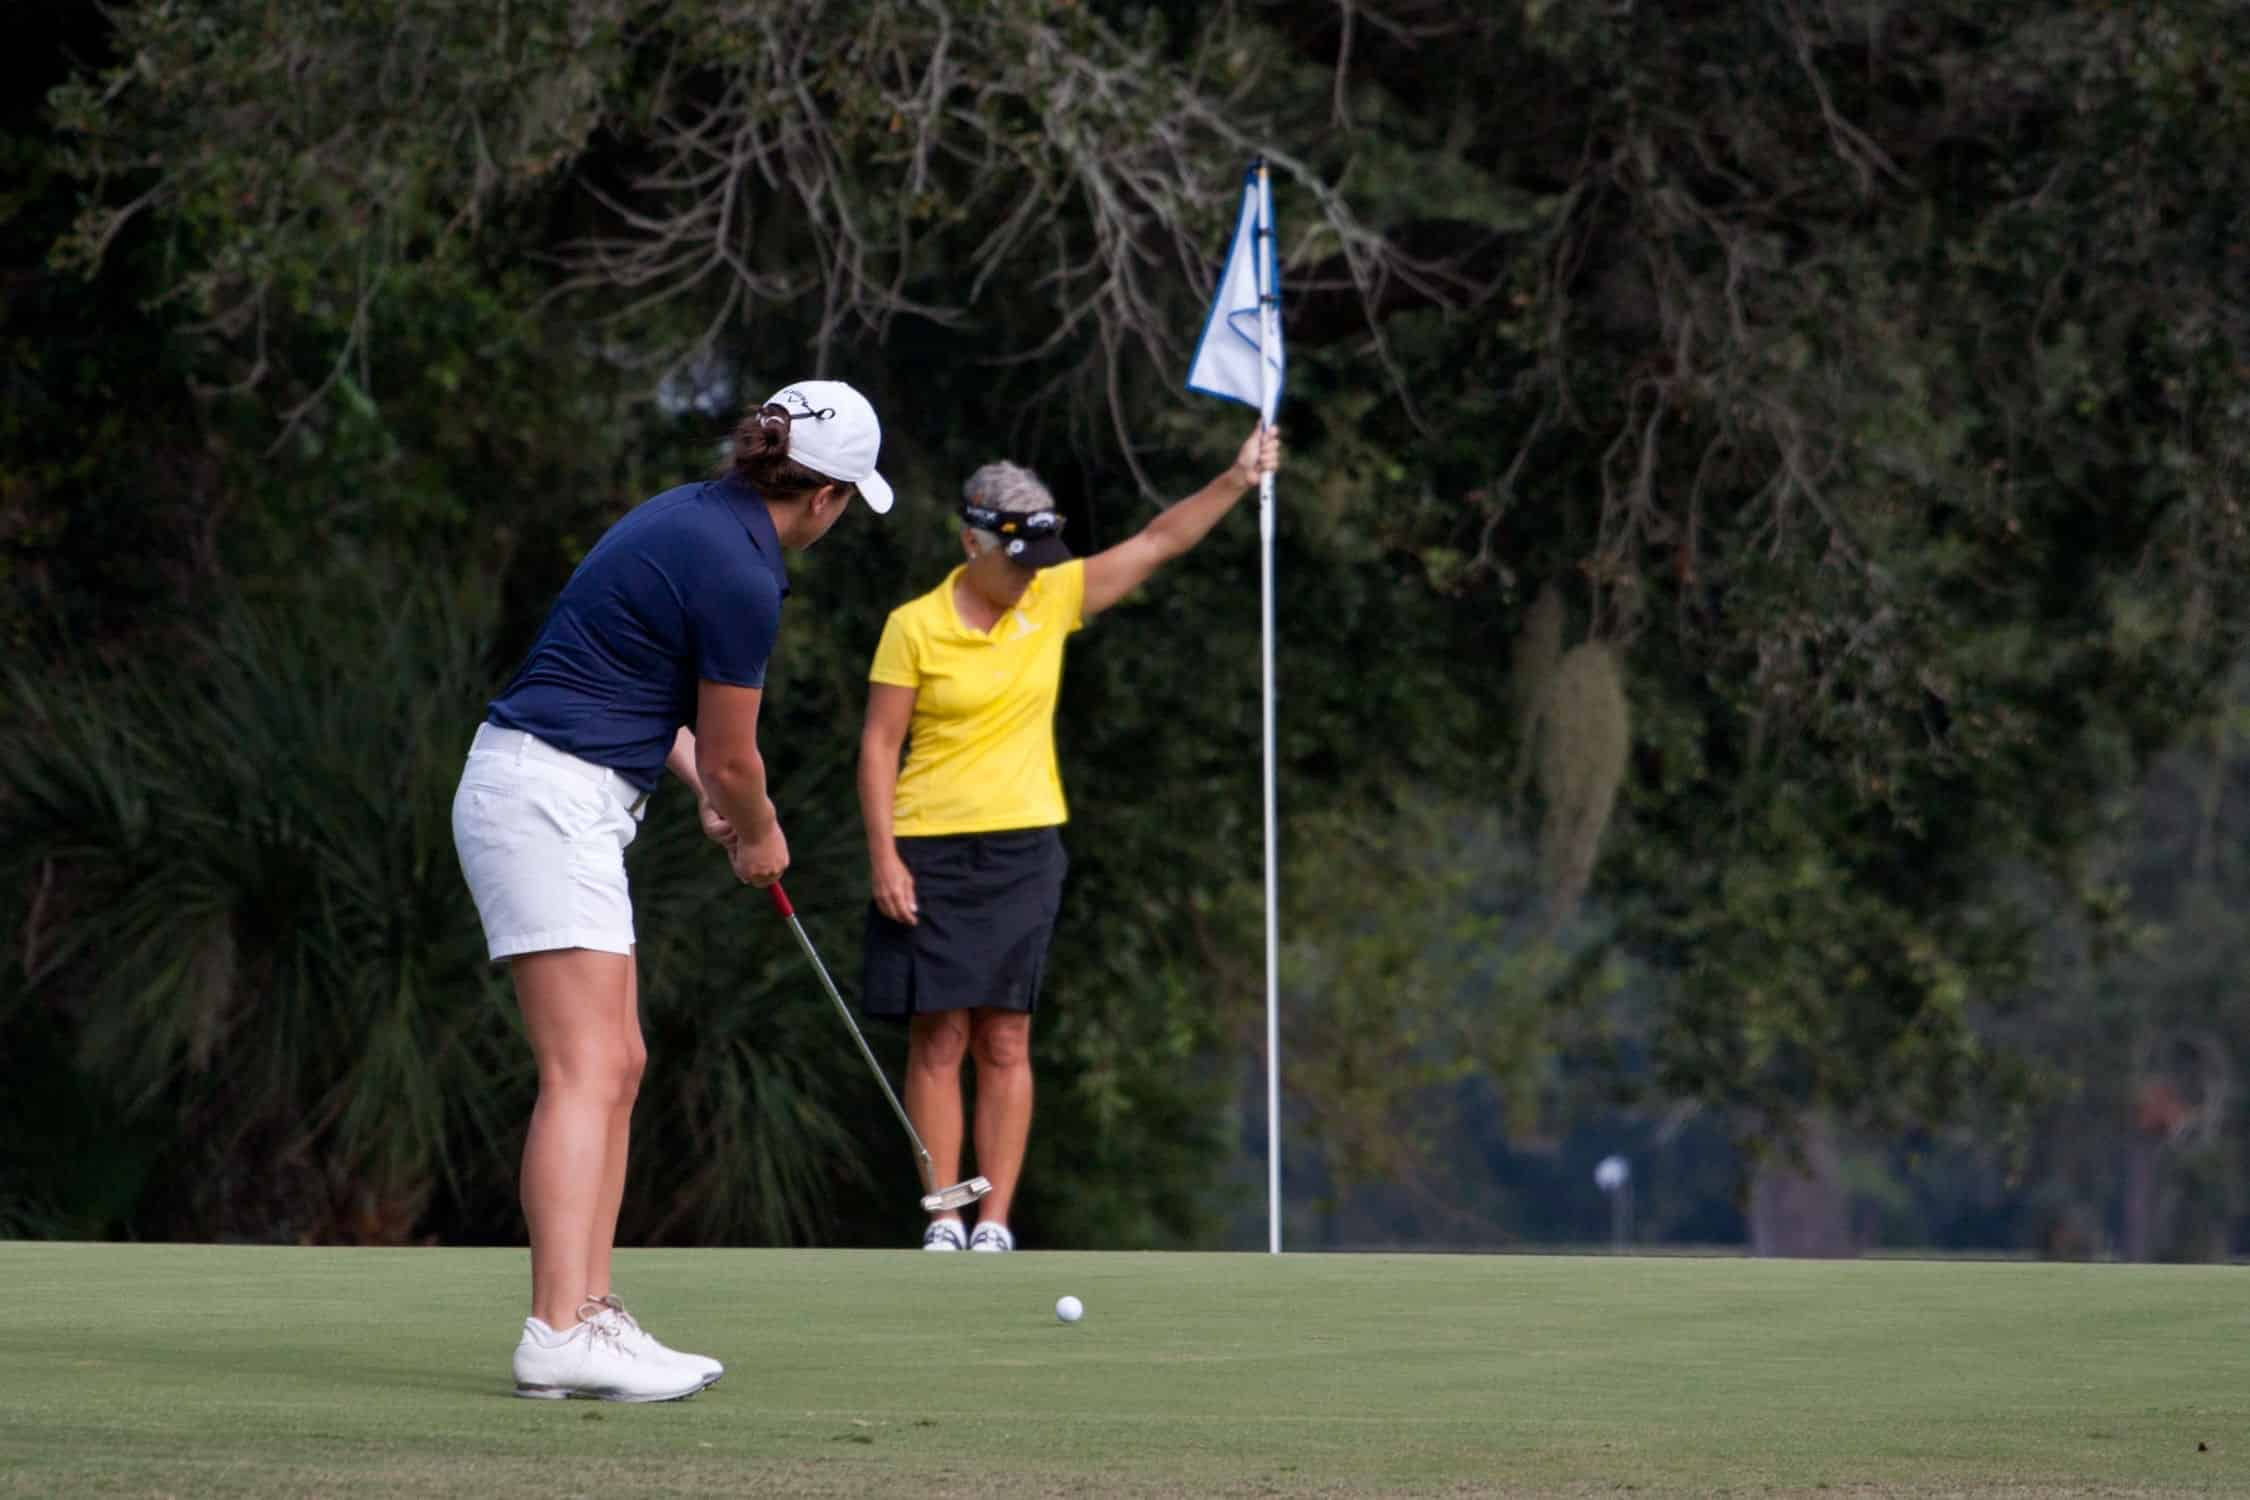 lady playing golf to illustrate mind management for golfers